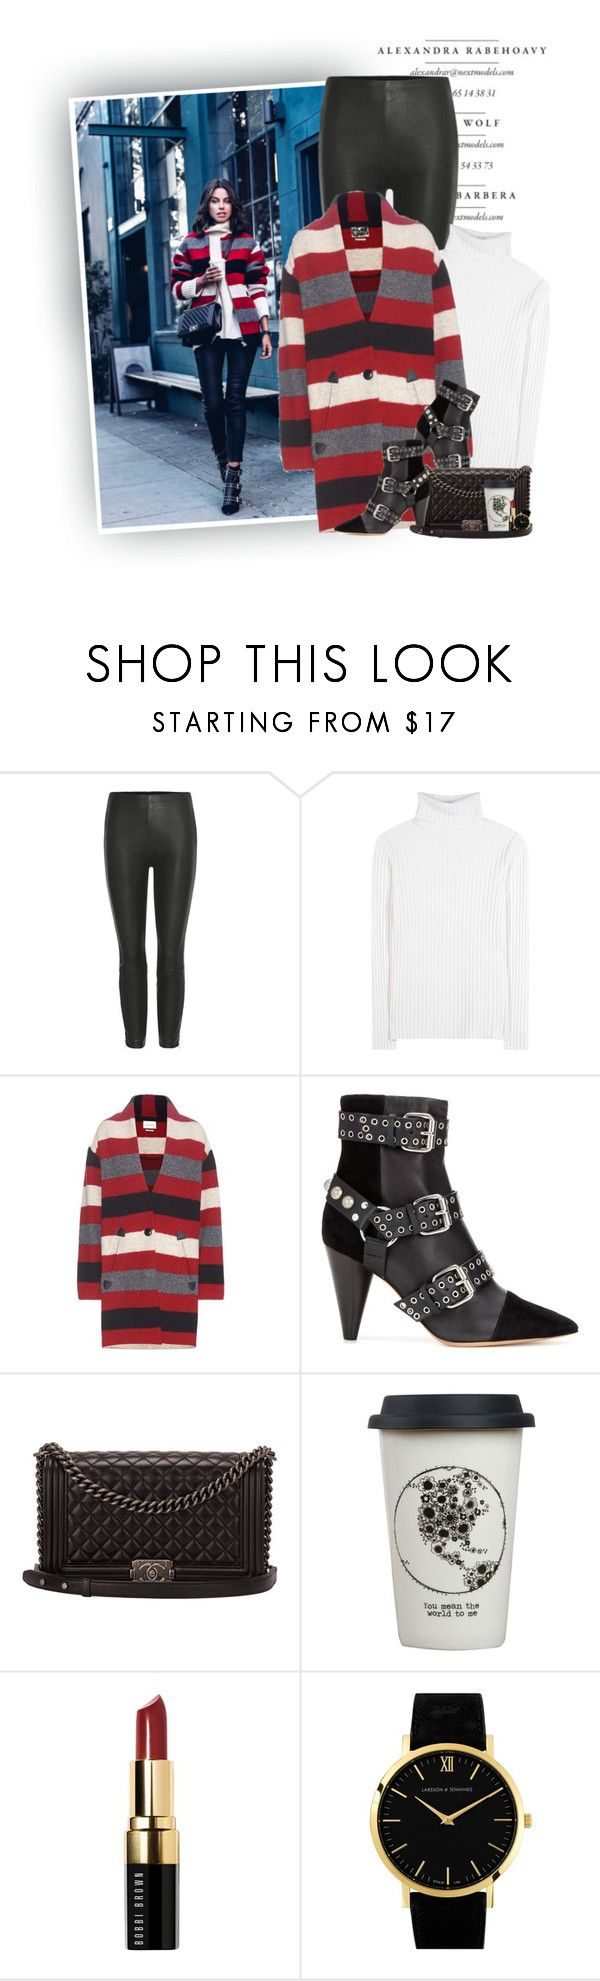 """Stripes & Studs"" by hollowpoint-smile ❤ liked on Polyvore featuring rag & bone, Jardin des Orangers, Étoile Isabel Marant, Isabel Marant, Chanel, Natural Life, Bobbi Brown Cosmetics and Larsson & Jennings"